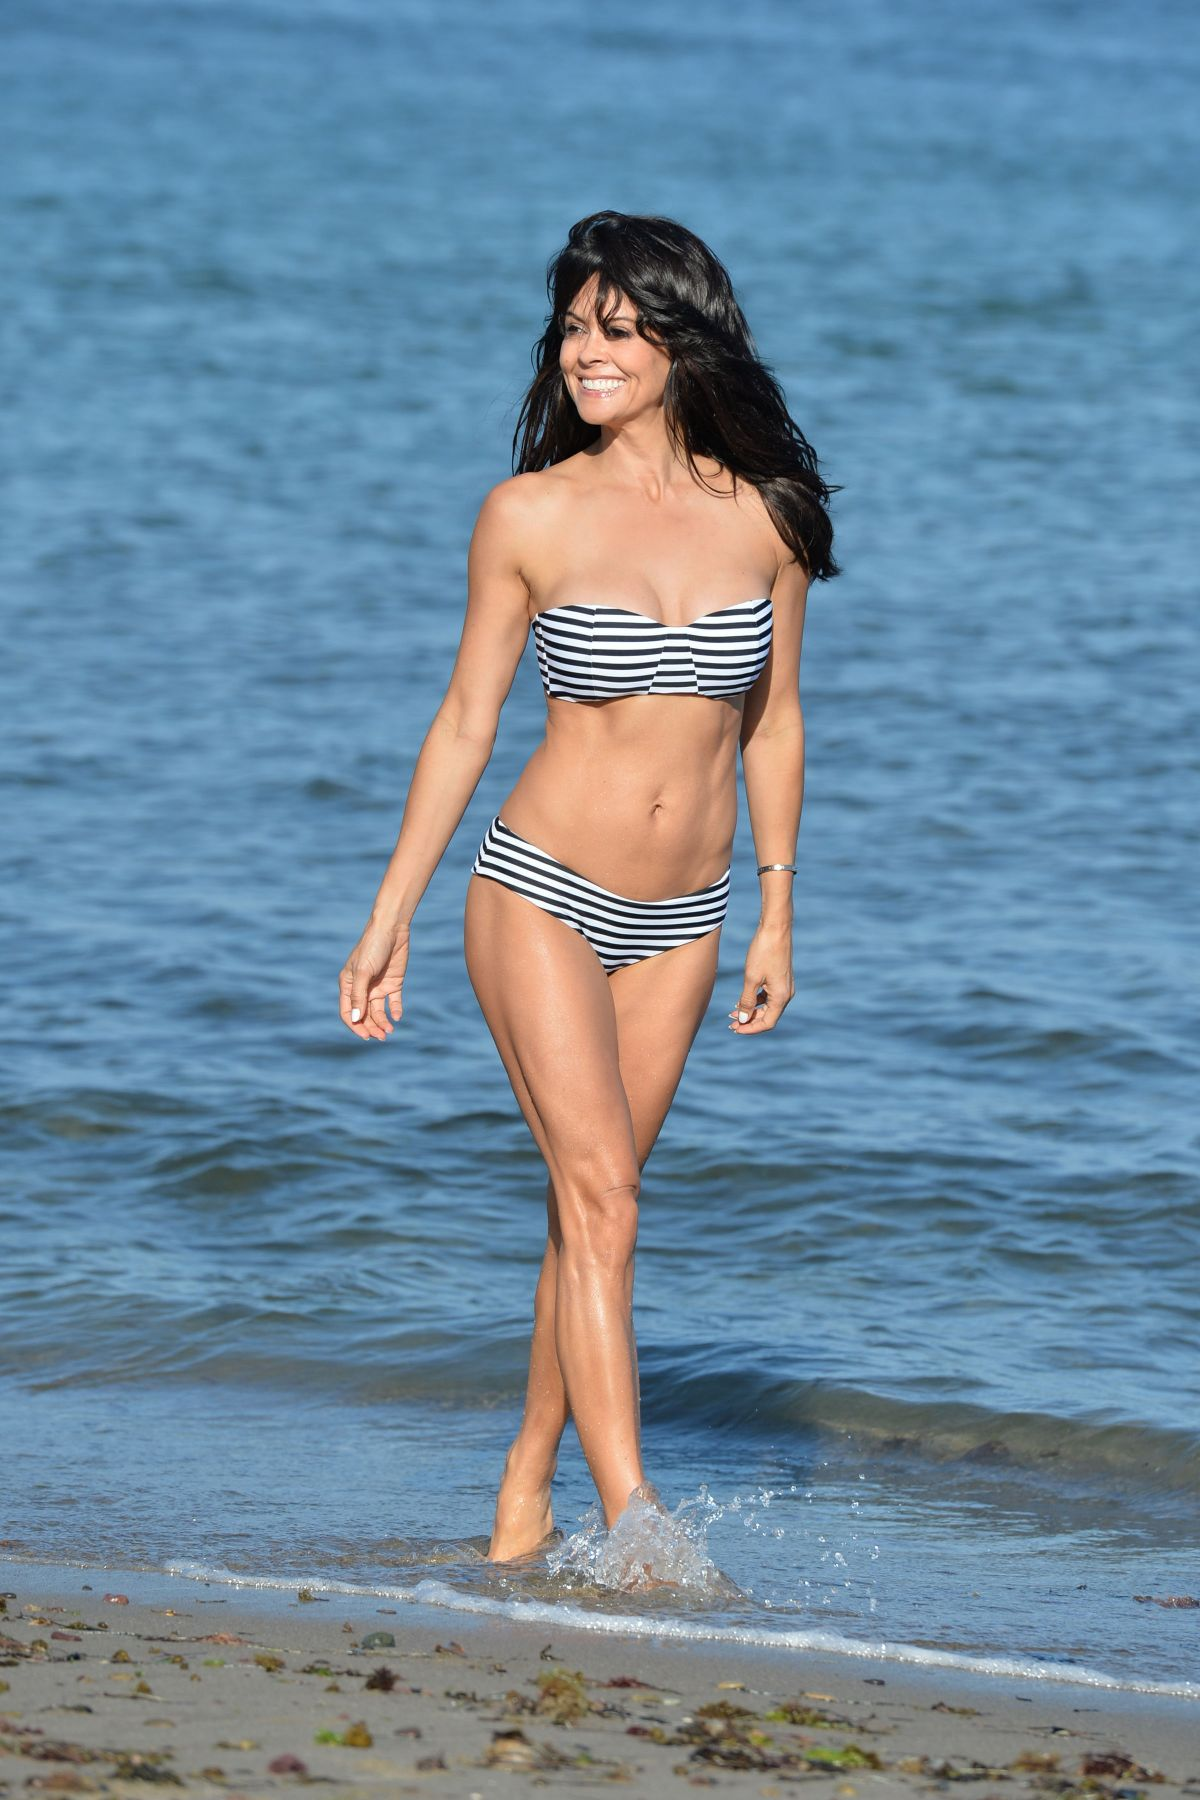 Bikini Brooke Burke nudes (21 photos), Ass, Cleavage, Feet, cameltoe 2017